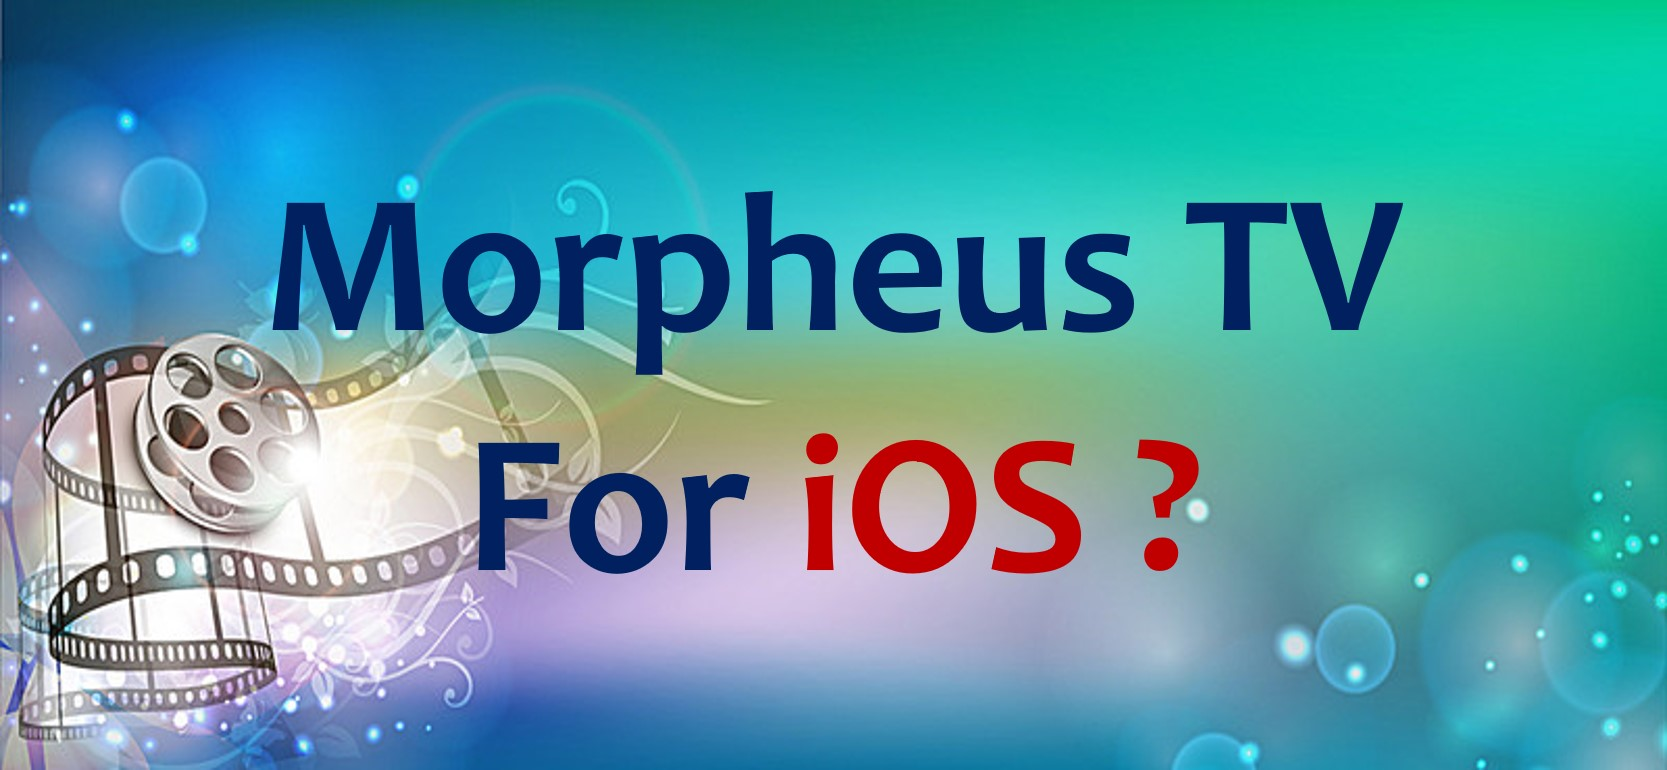 morpheus tv ios download